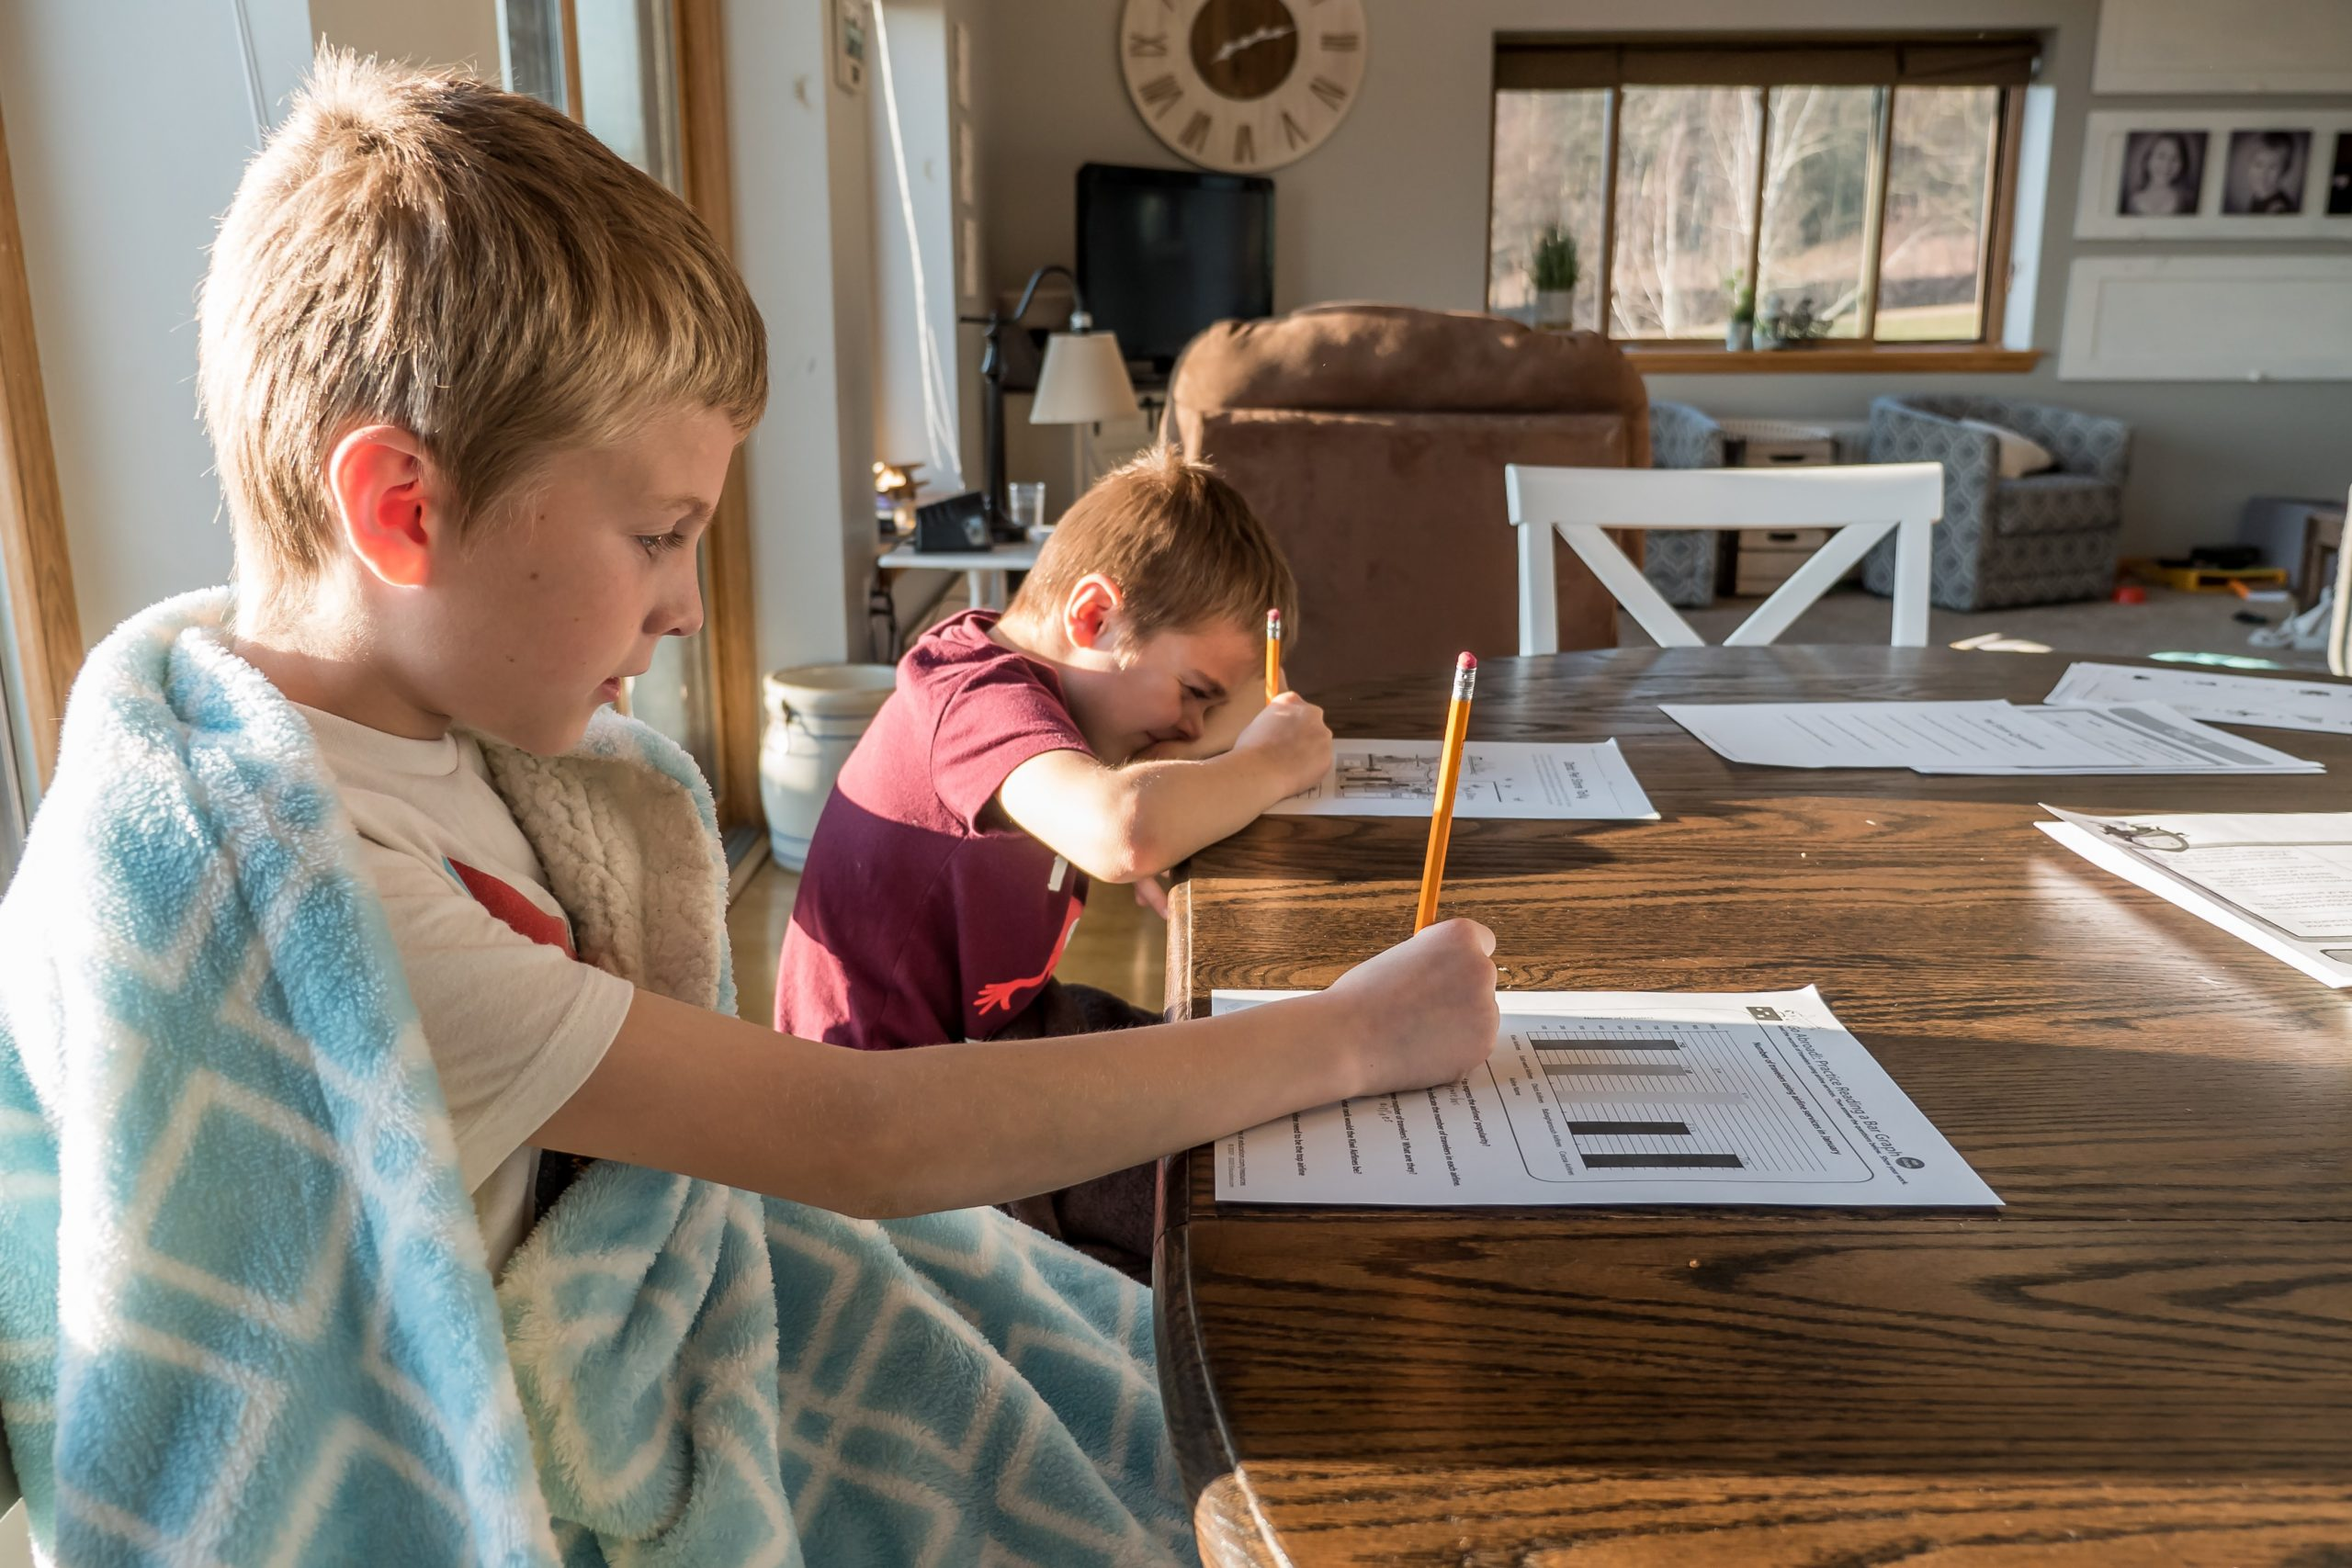 kids thrive with routine through uncertain times